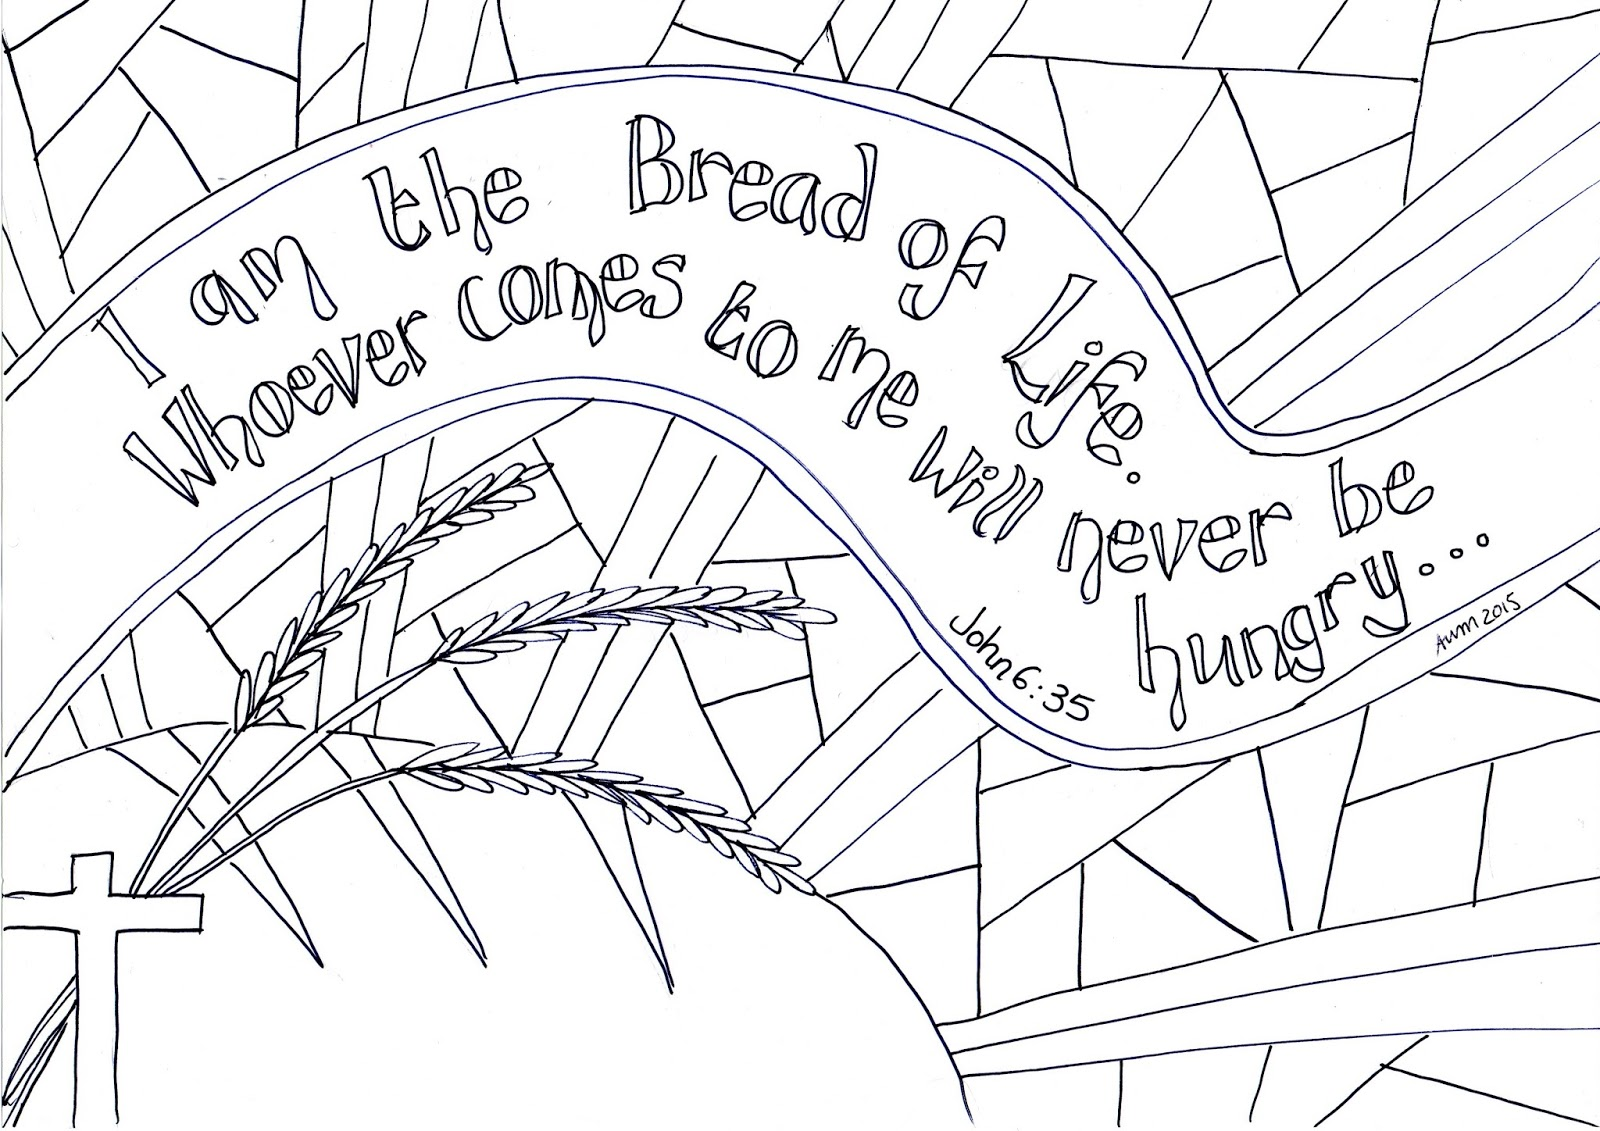 I Am The Bread Of Life Reflective Colouring Sheet